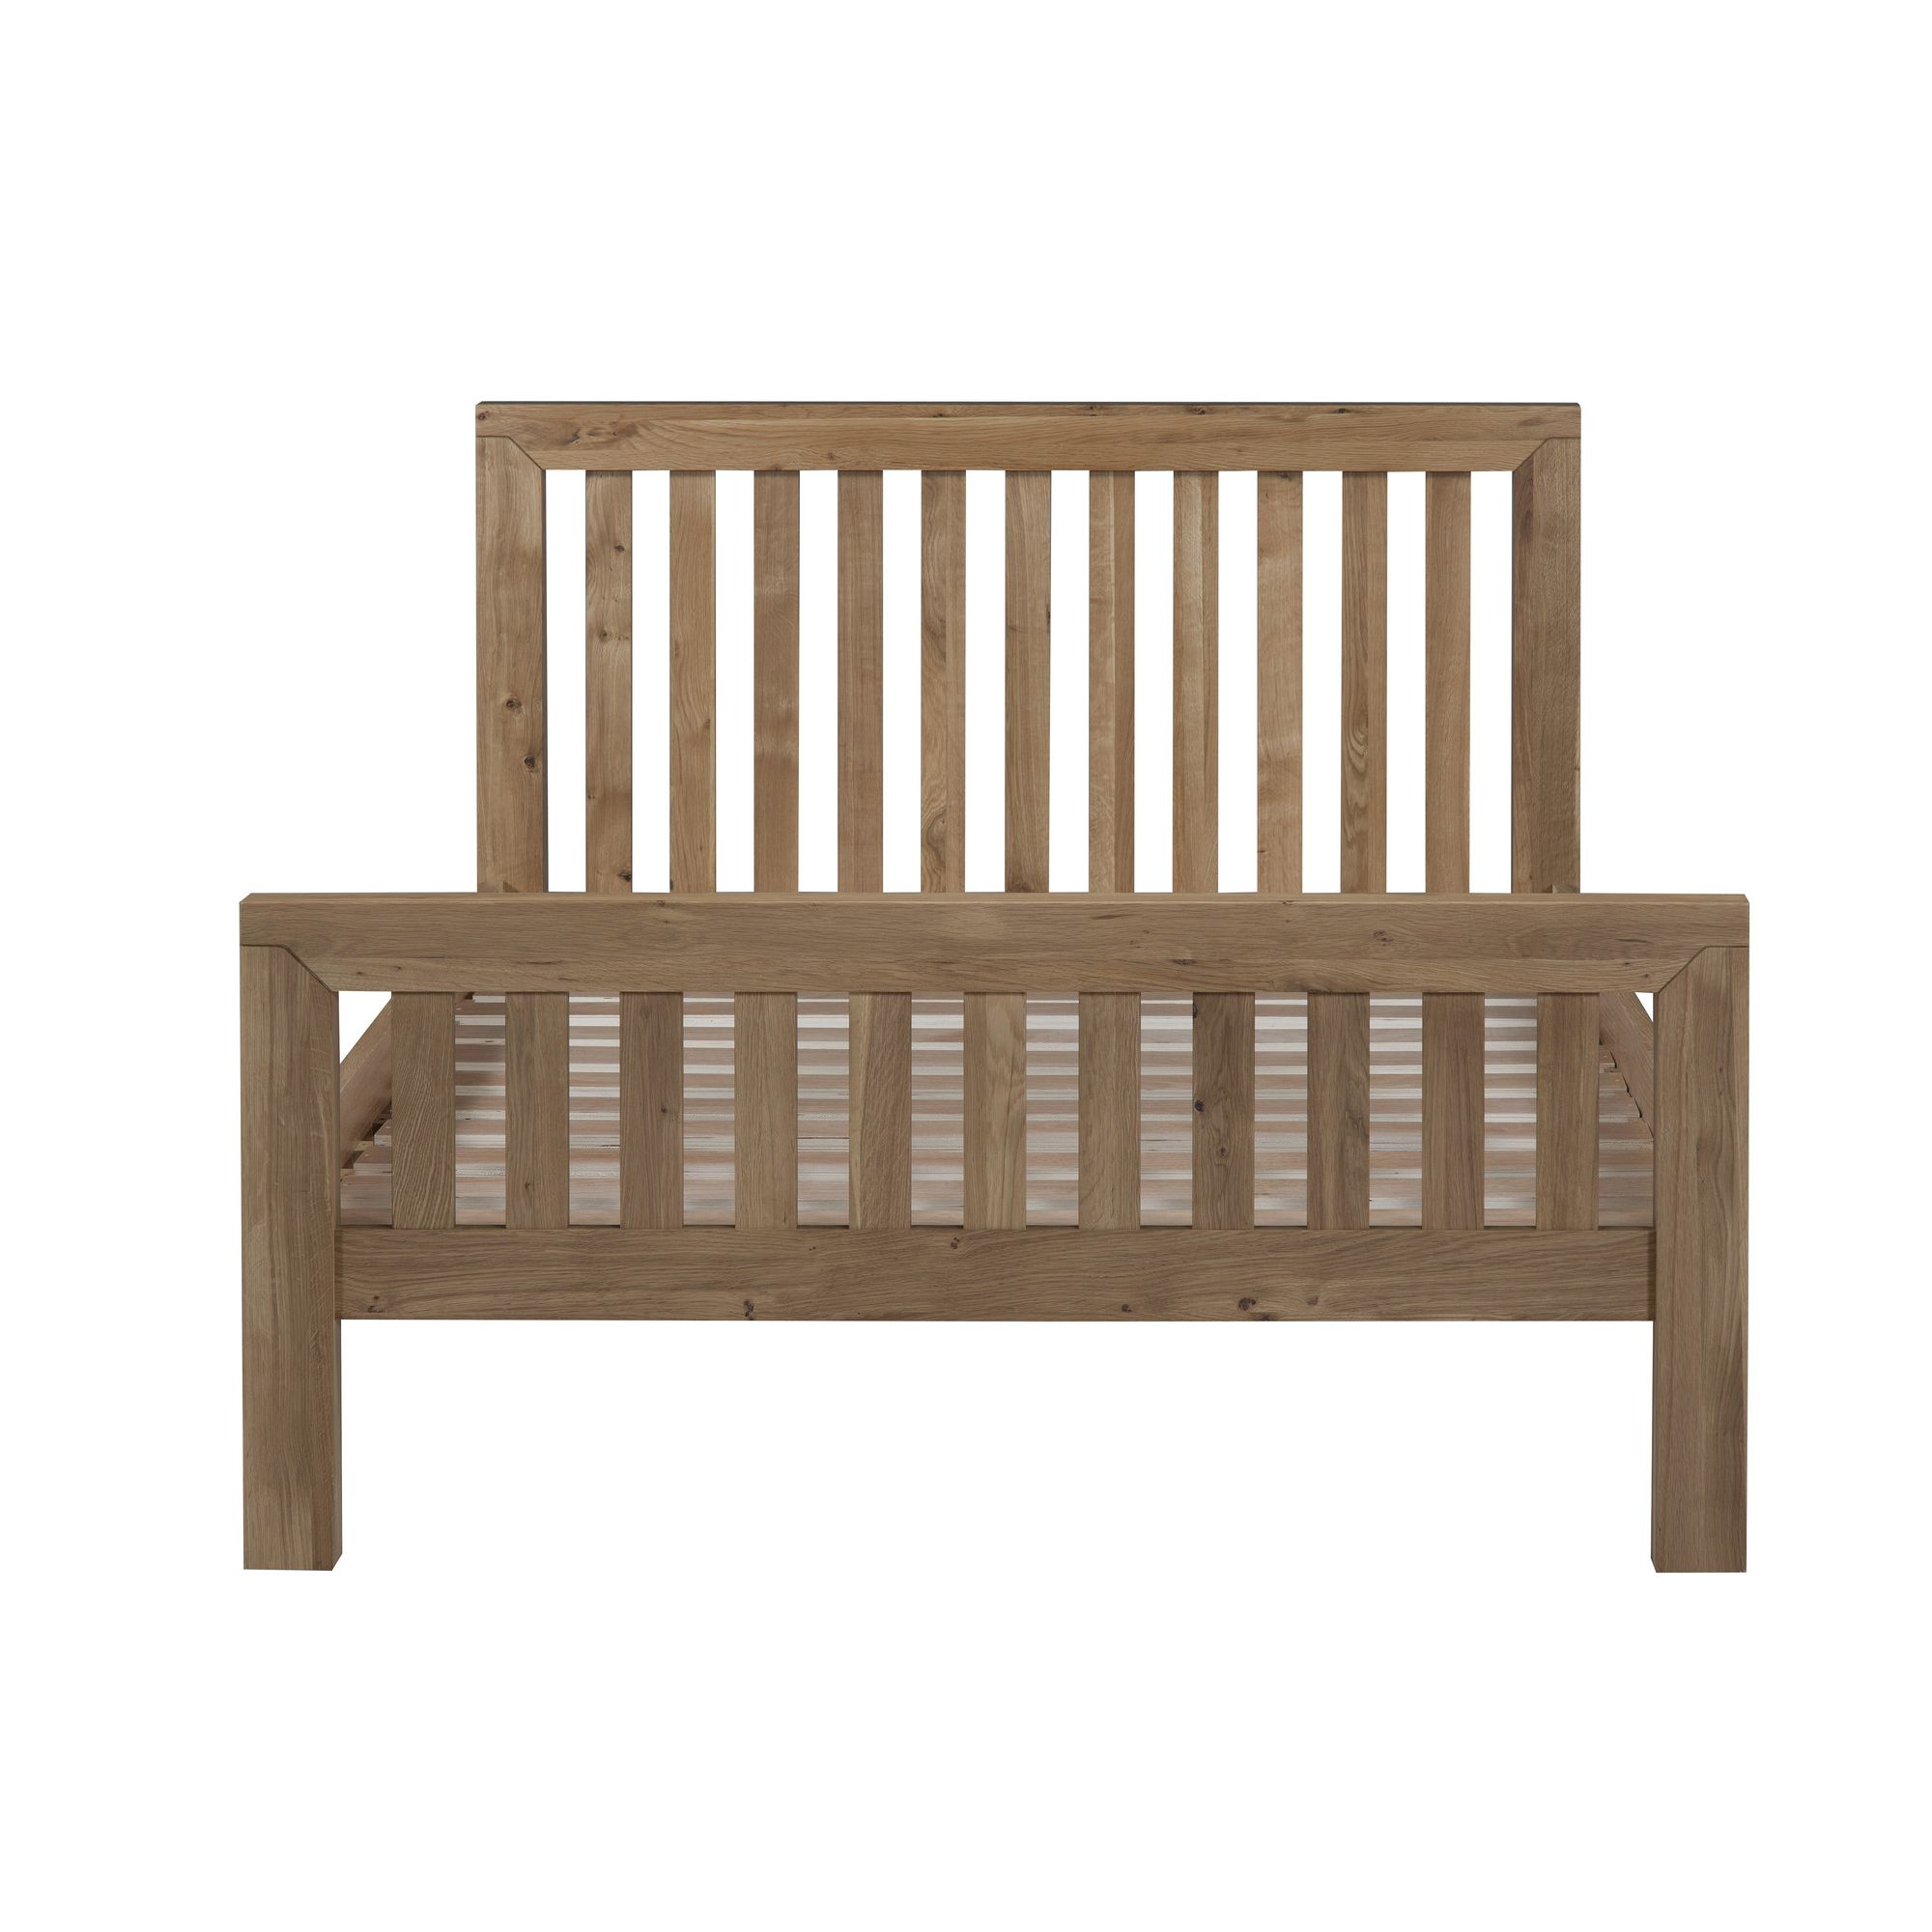 Alterton Furniture Wiltshire Bed Frame - Double at Tesco Direct